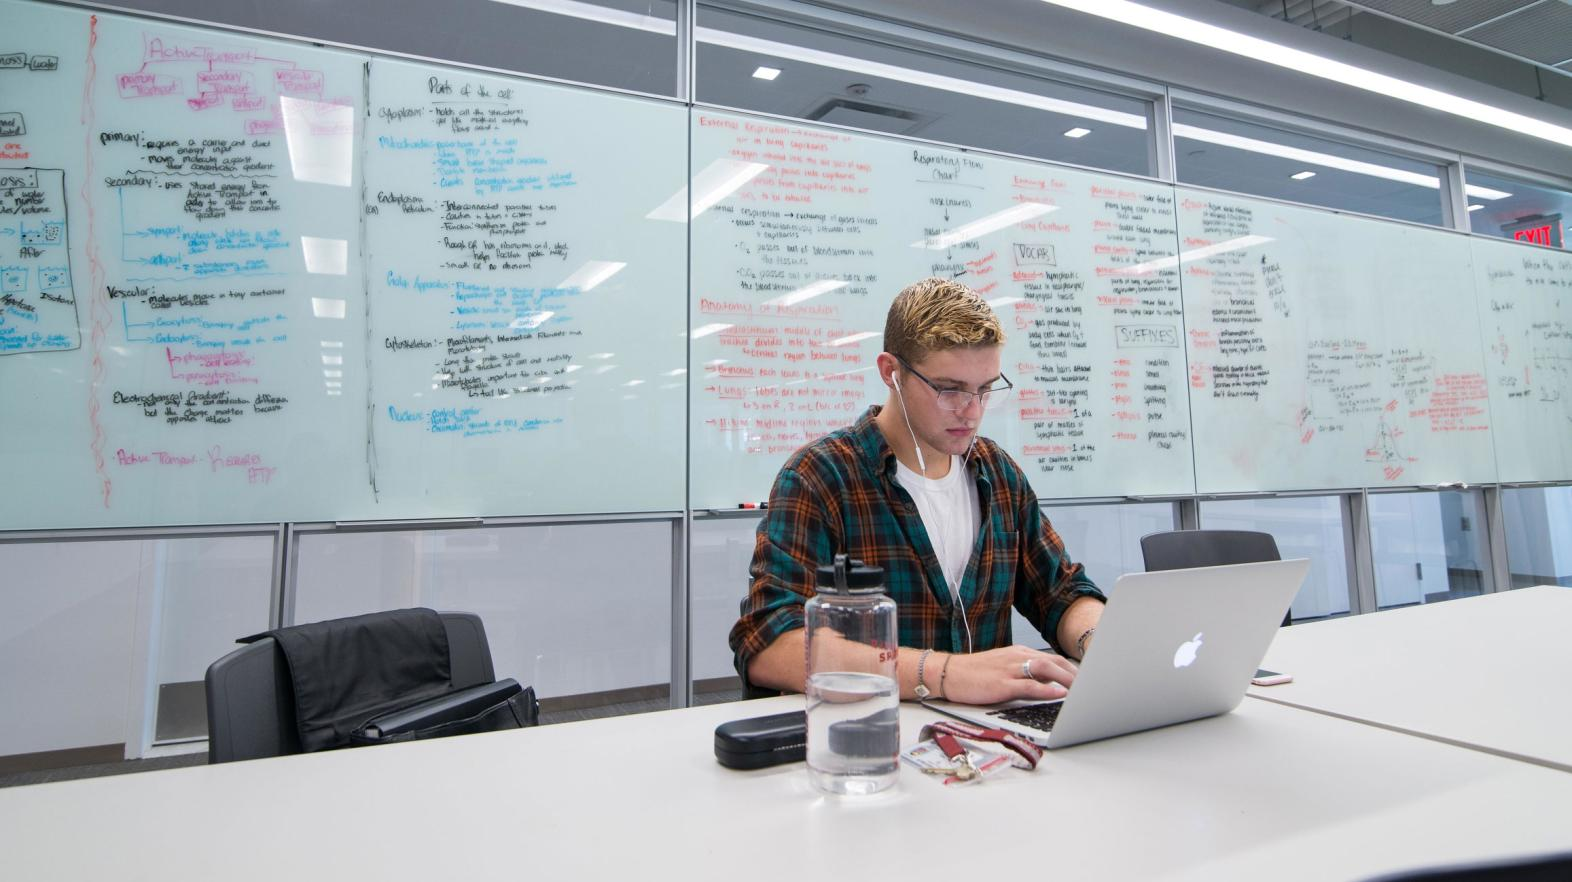 A male student types on his laptop as he sits in front of a white board with notes written on it.